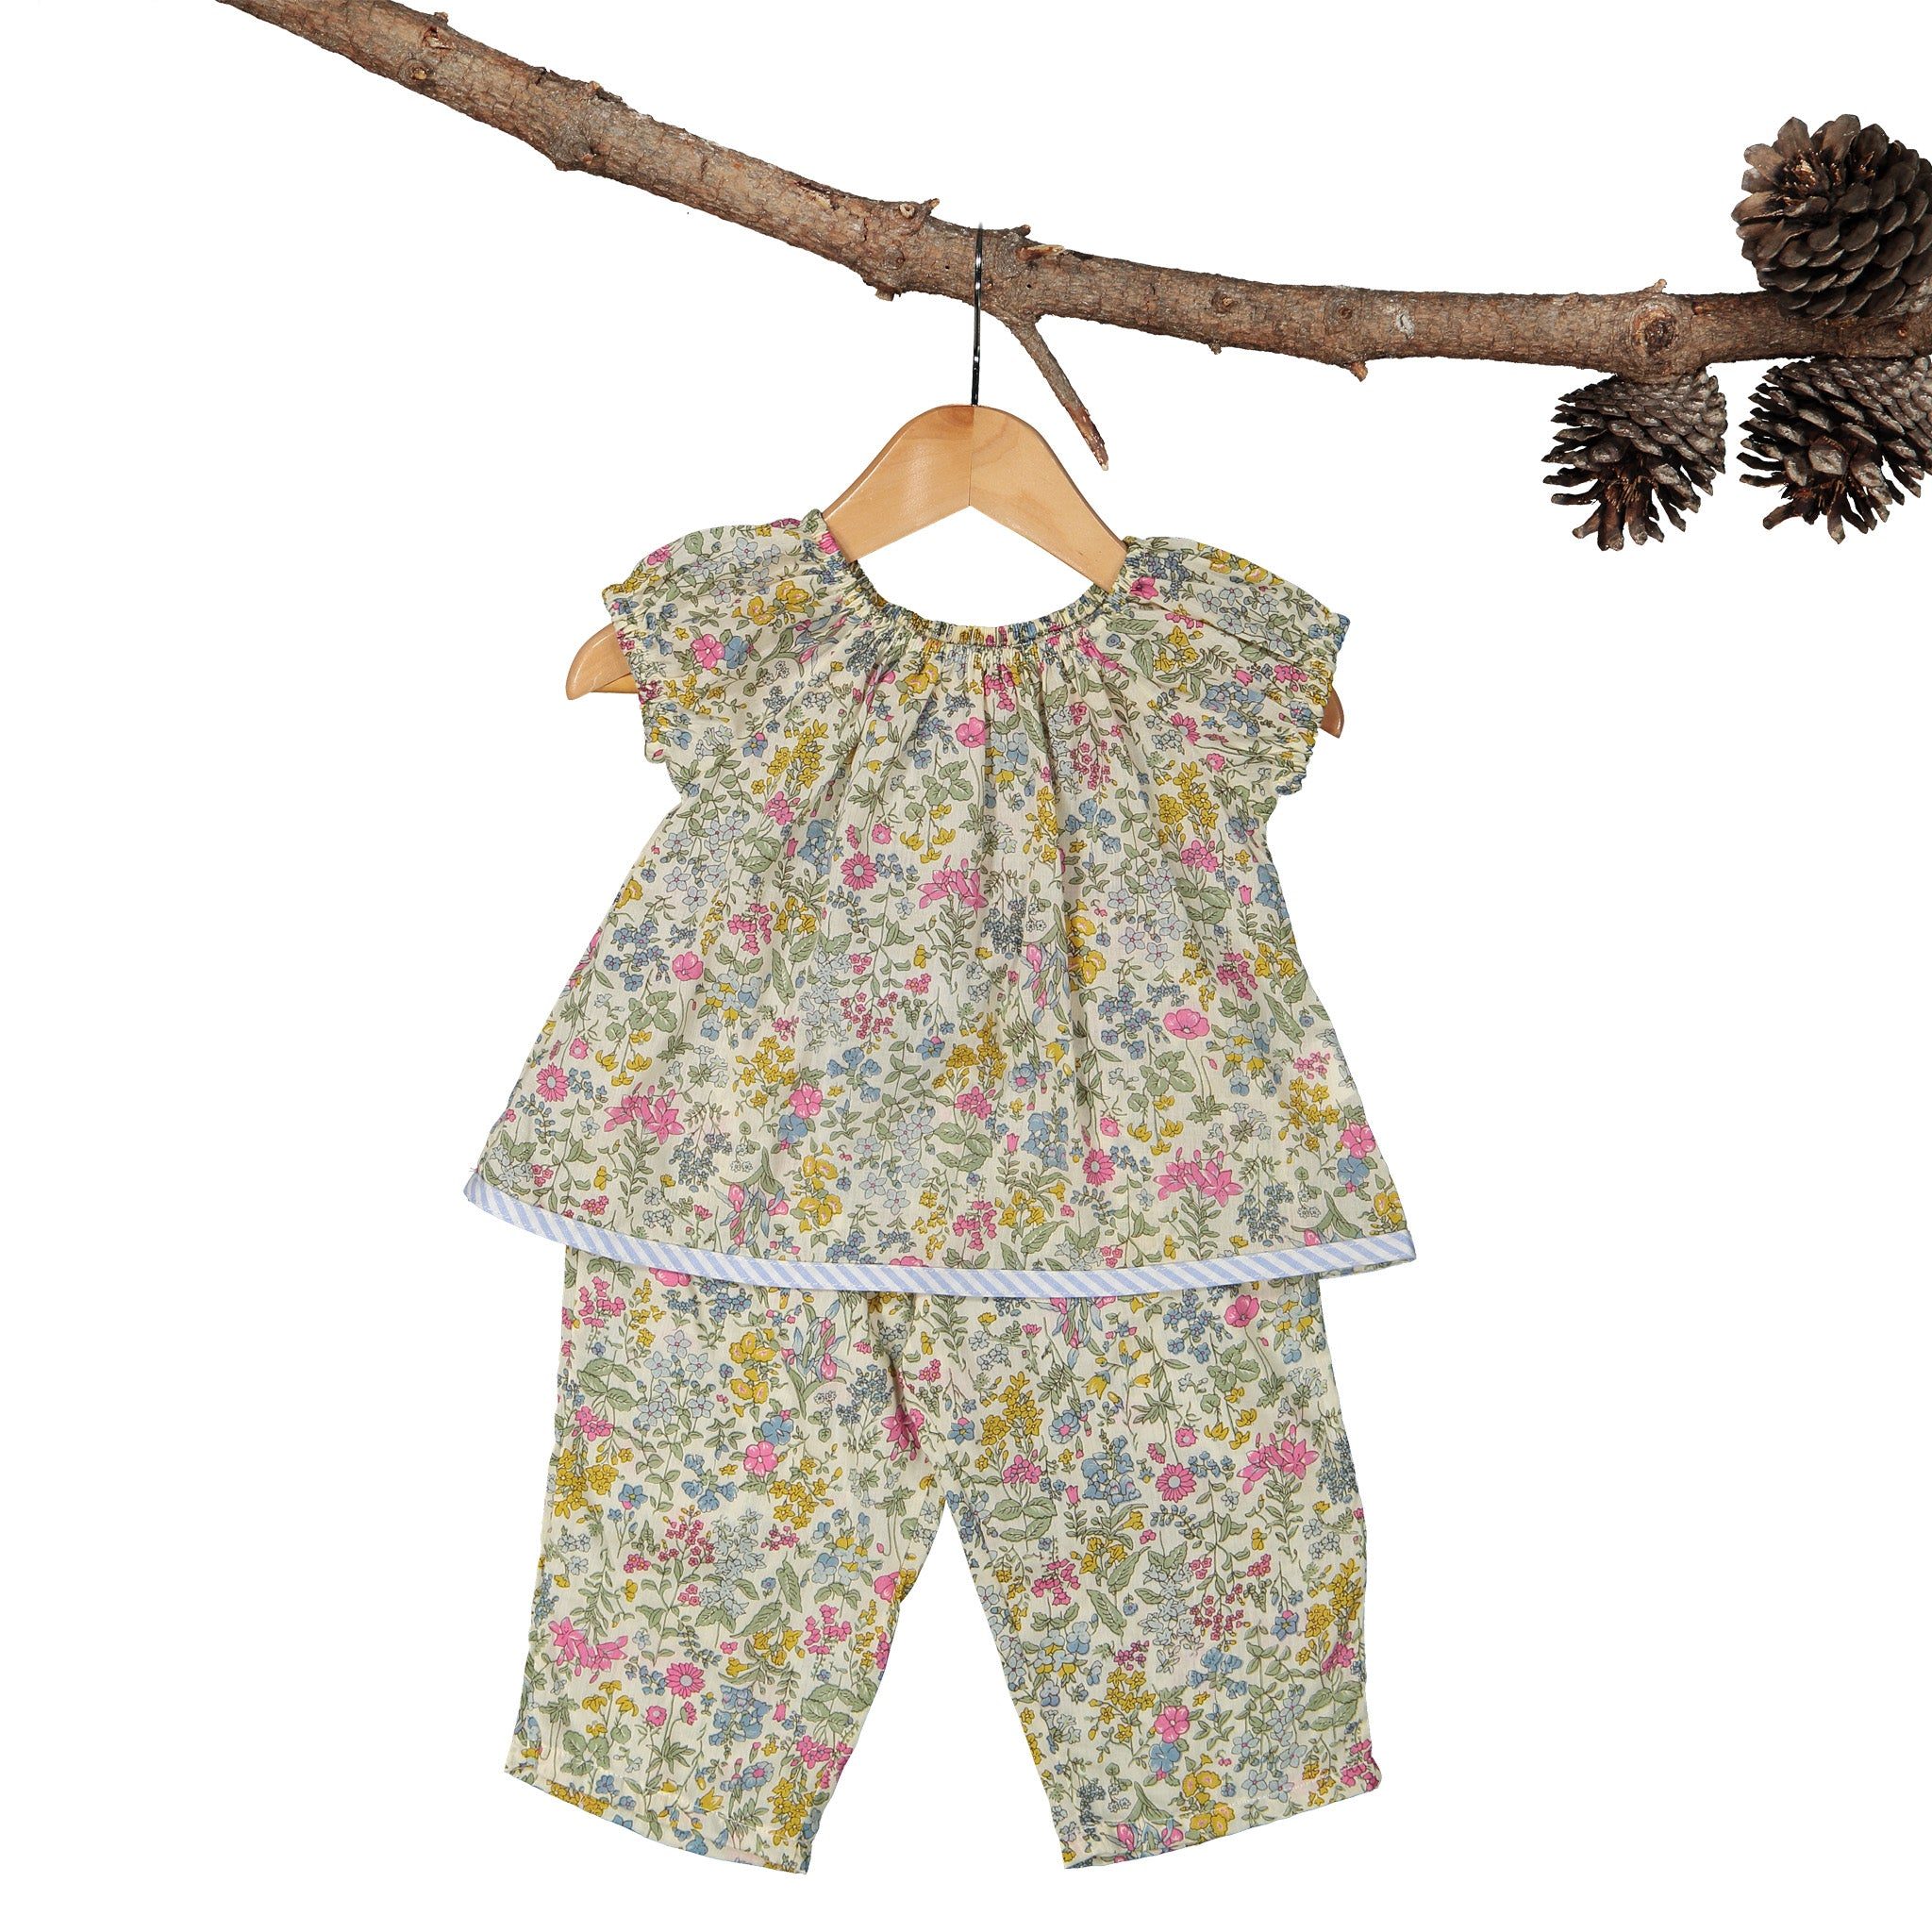 Botanical Print Girls Pyjama Set